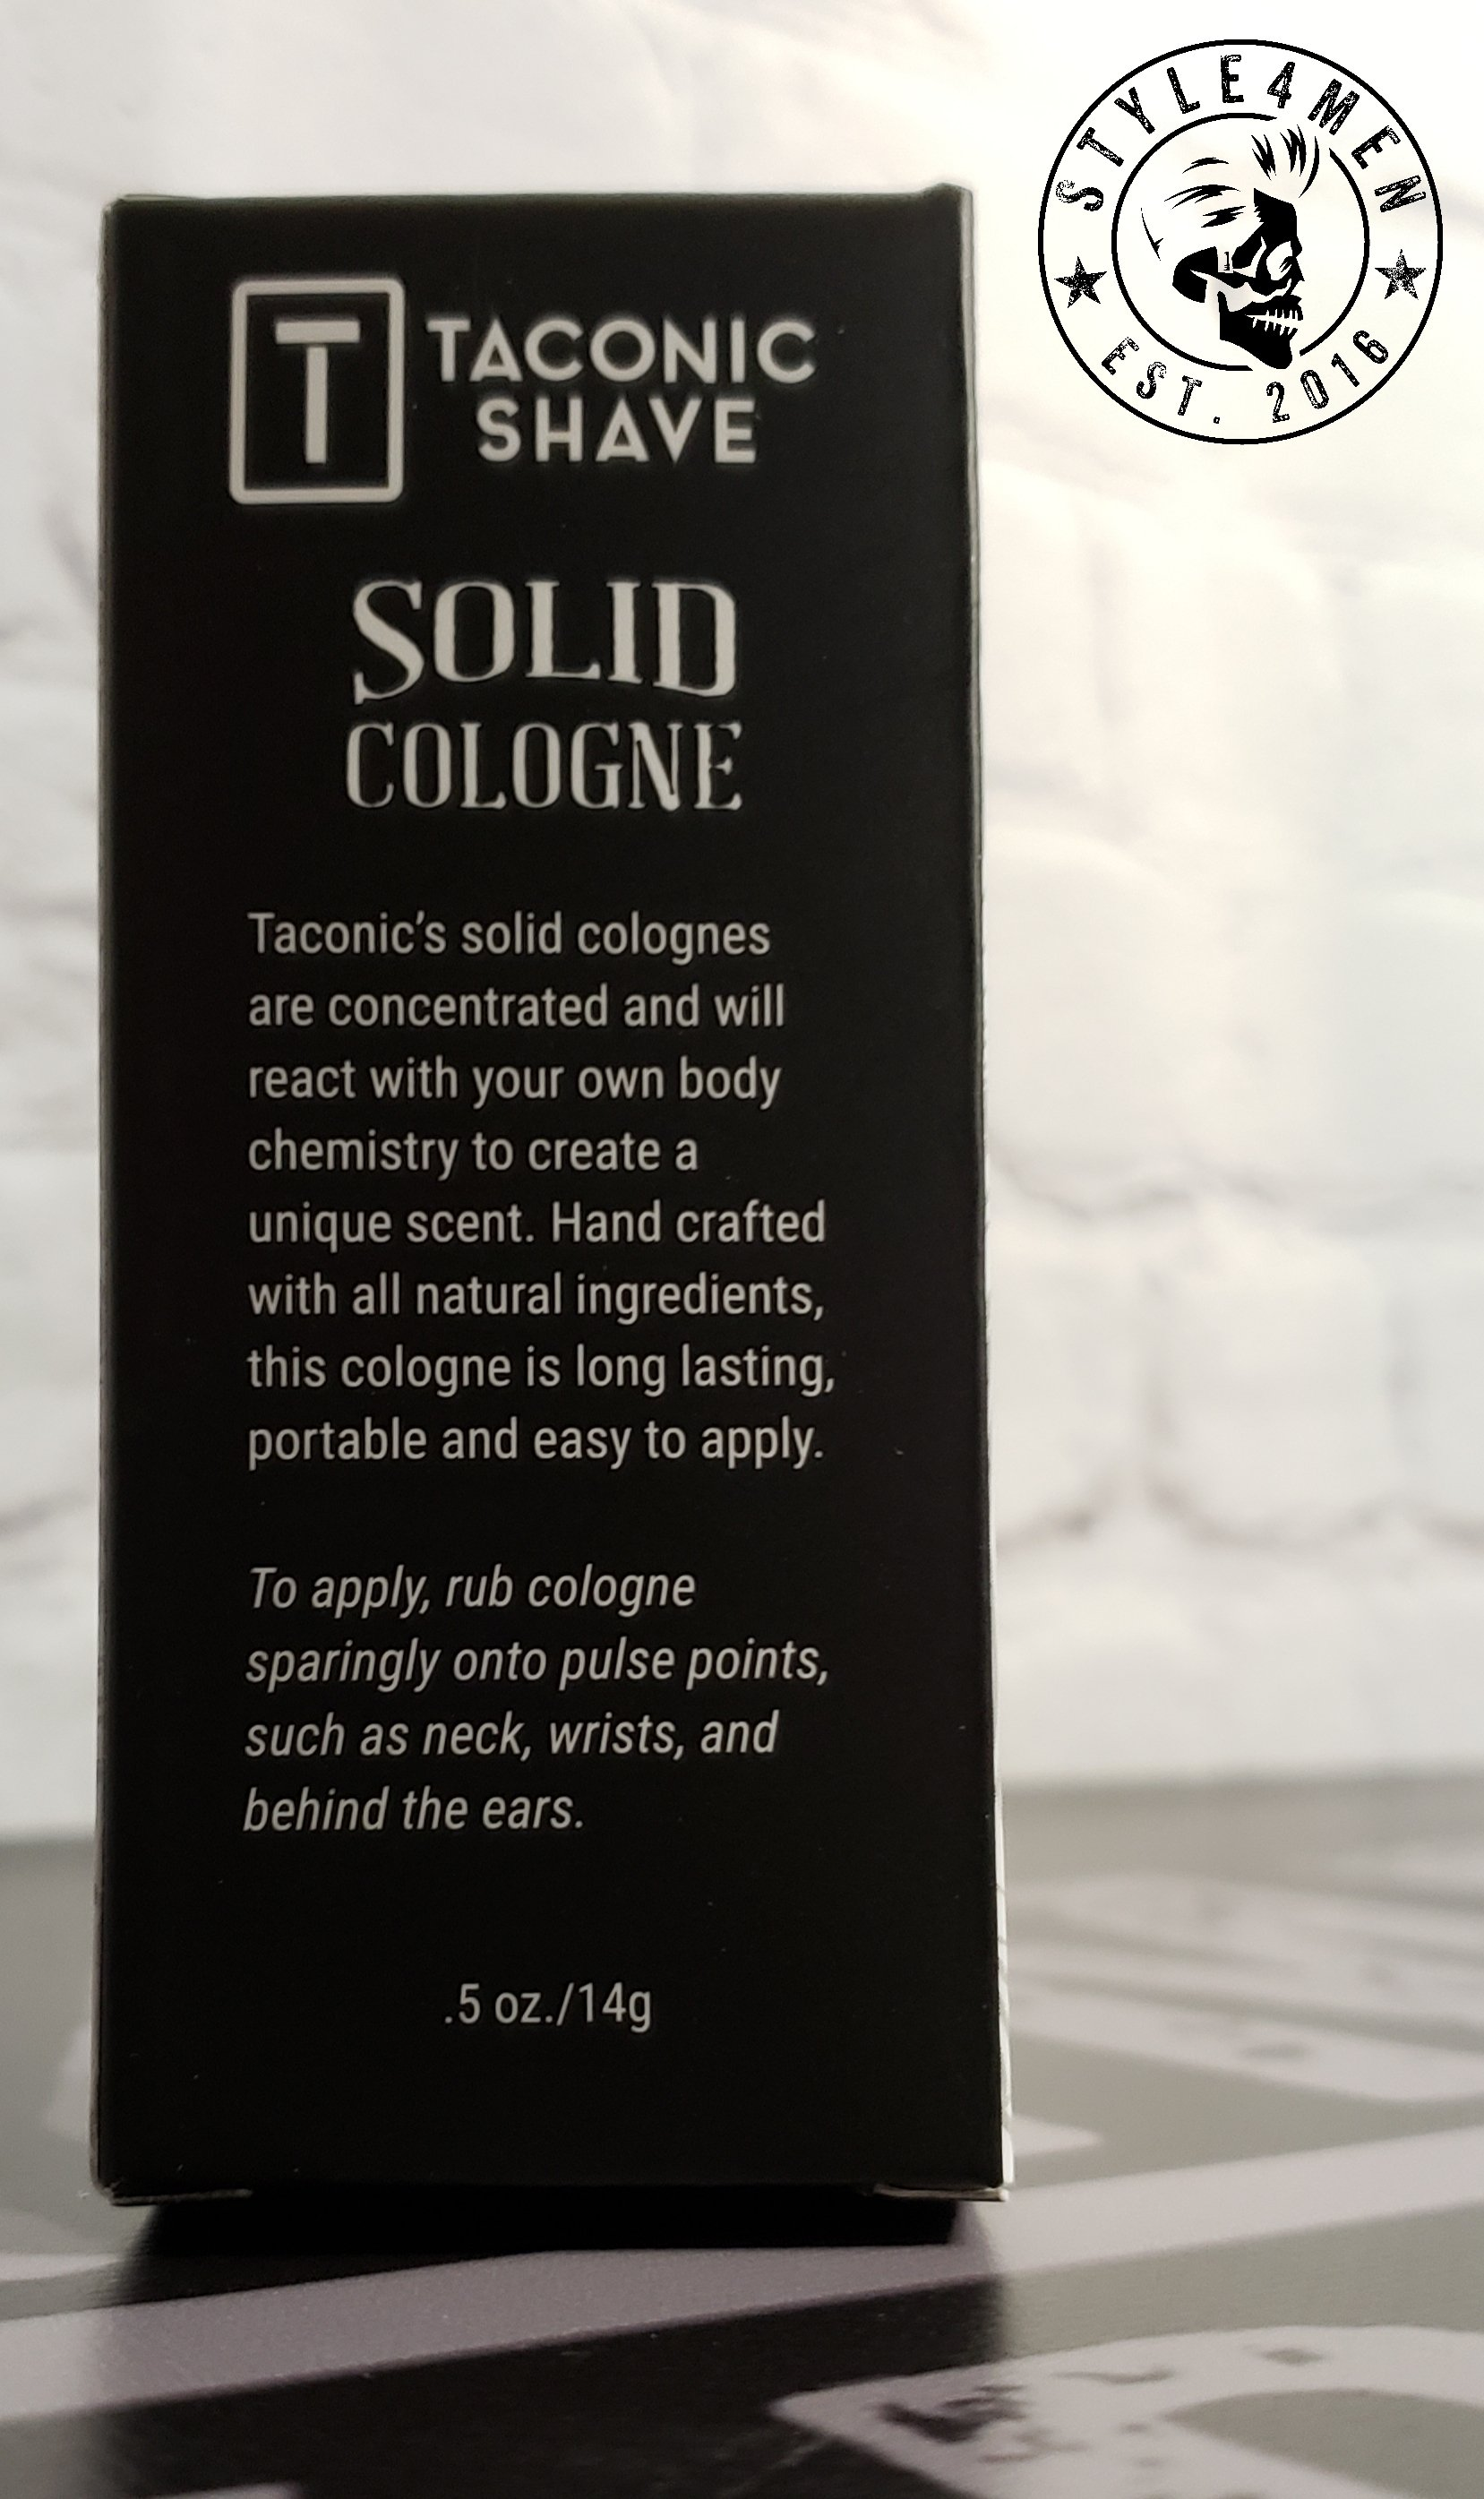 Taconic shave Solid Colognes